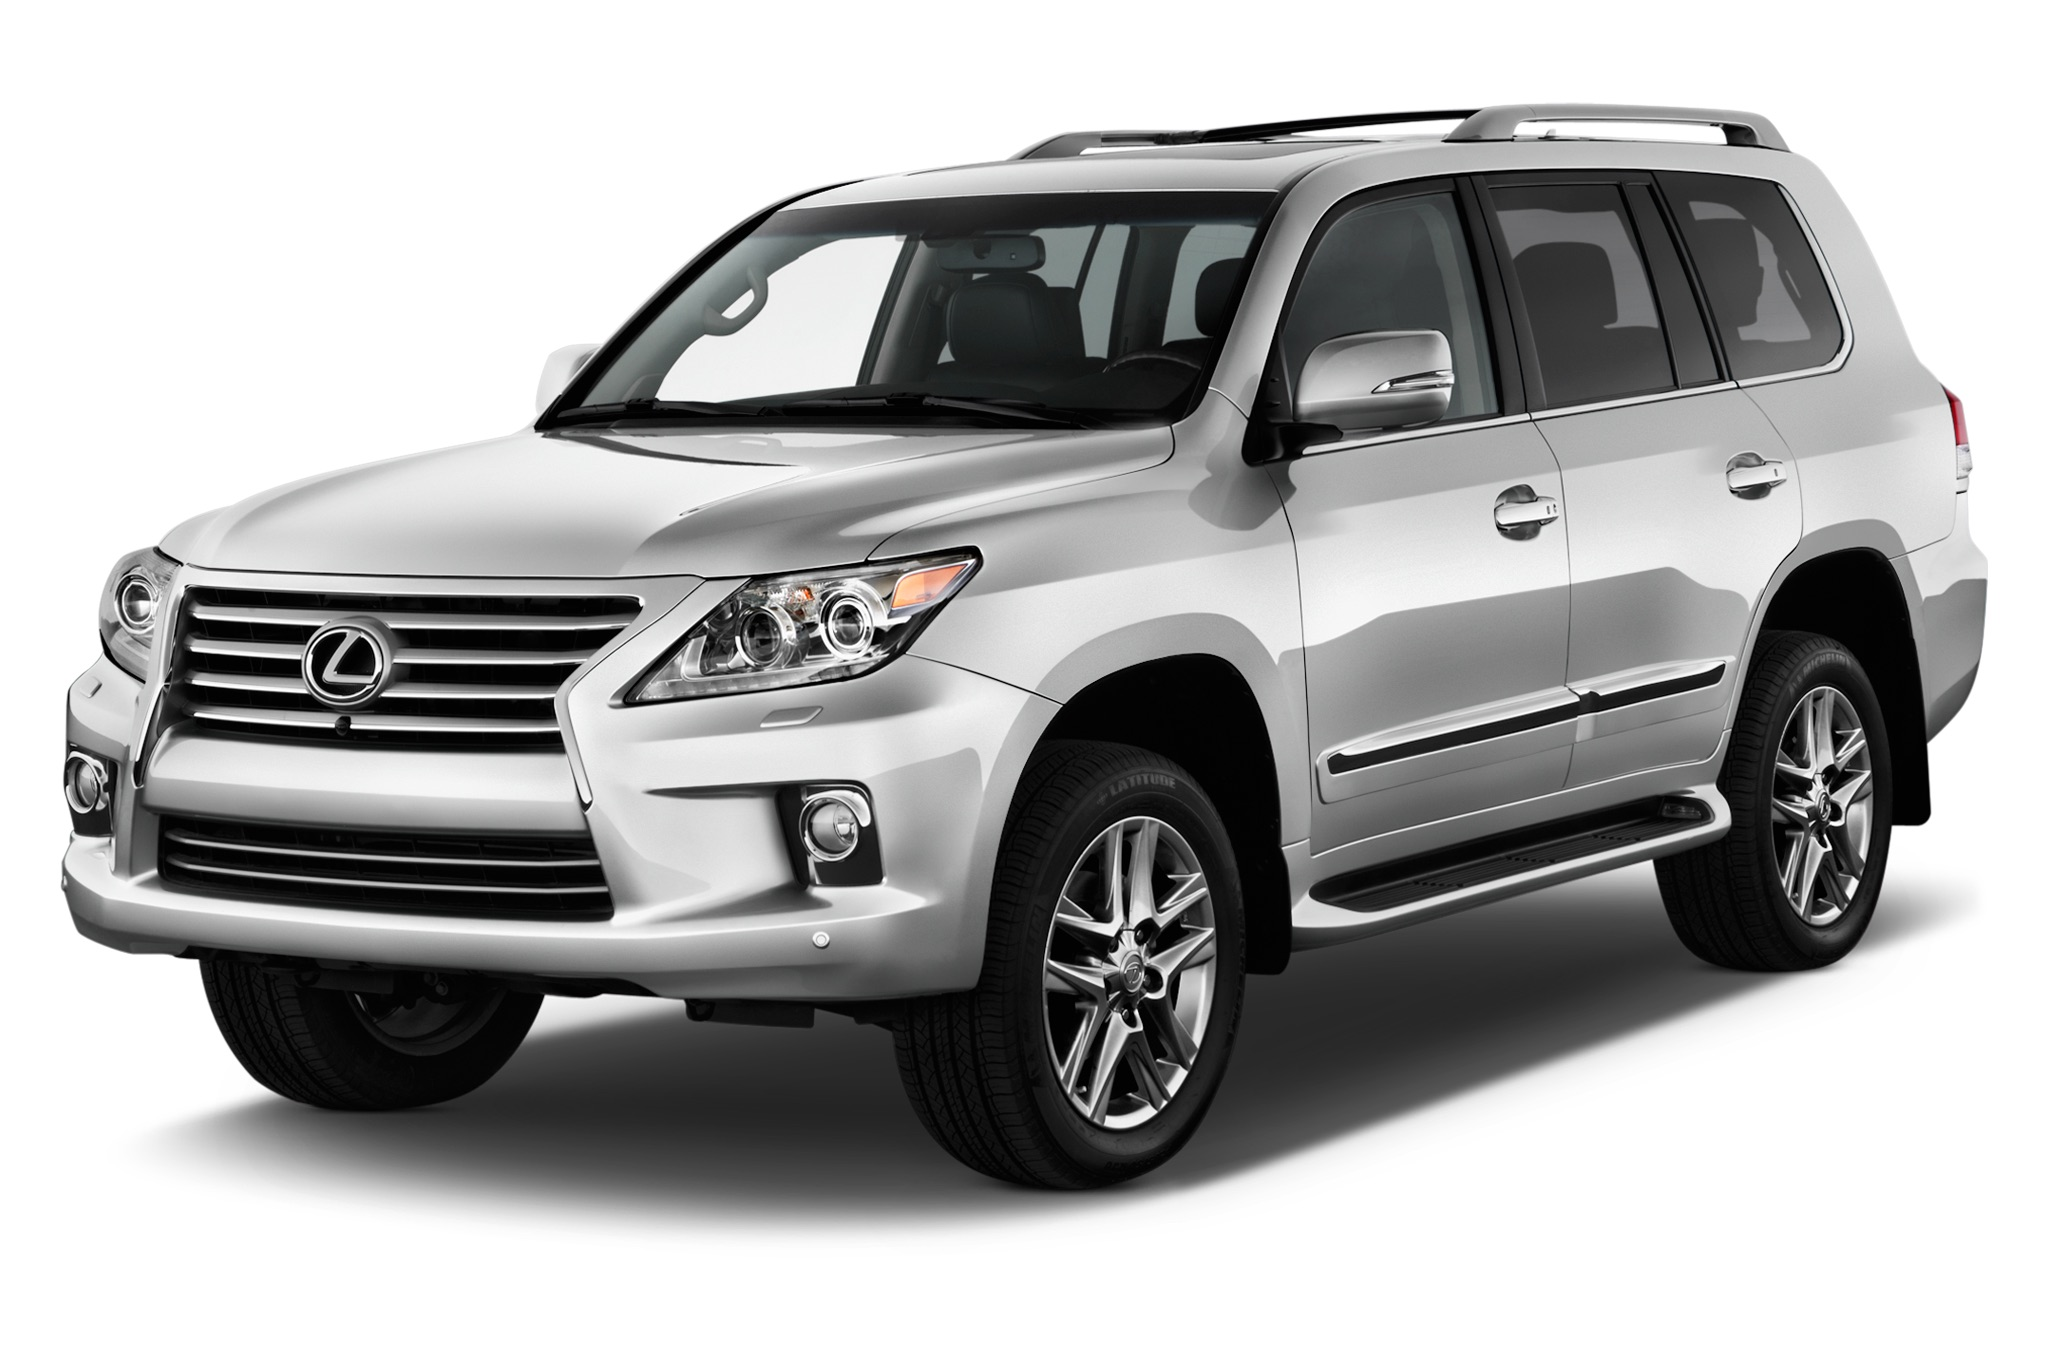 Lexus LX450, LX470, LX570 1995-2016 Workshop Repair & Service Manual